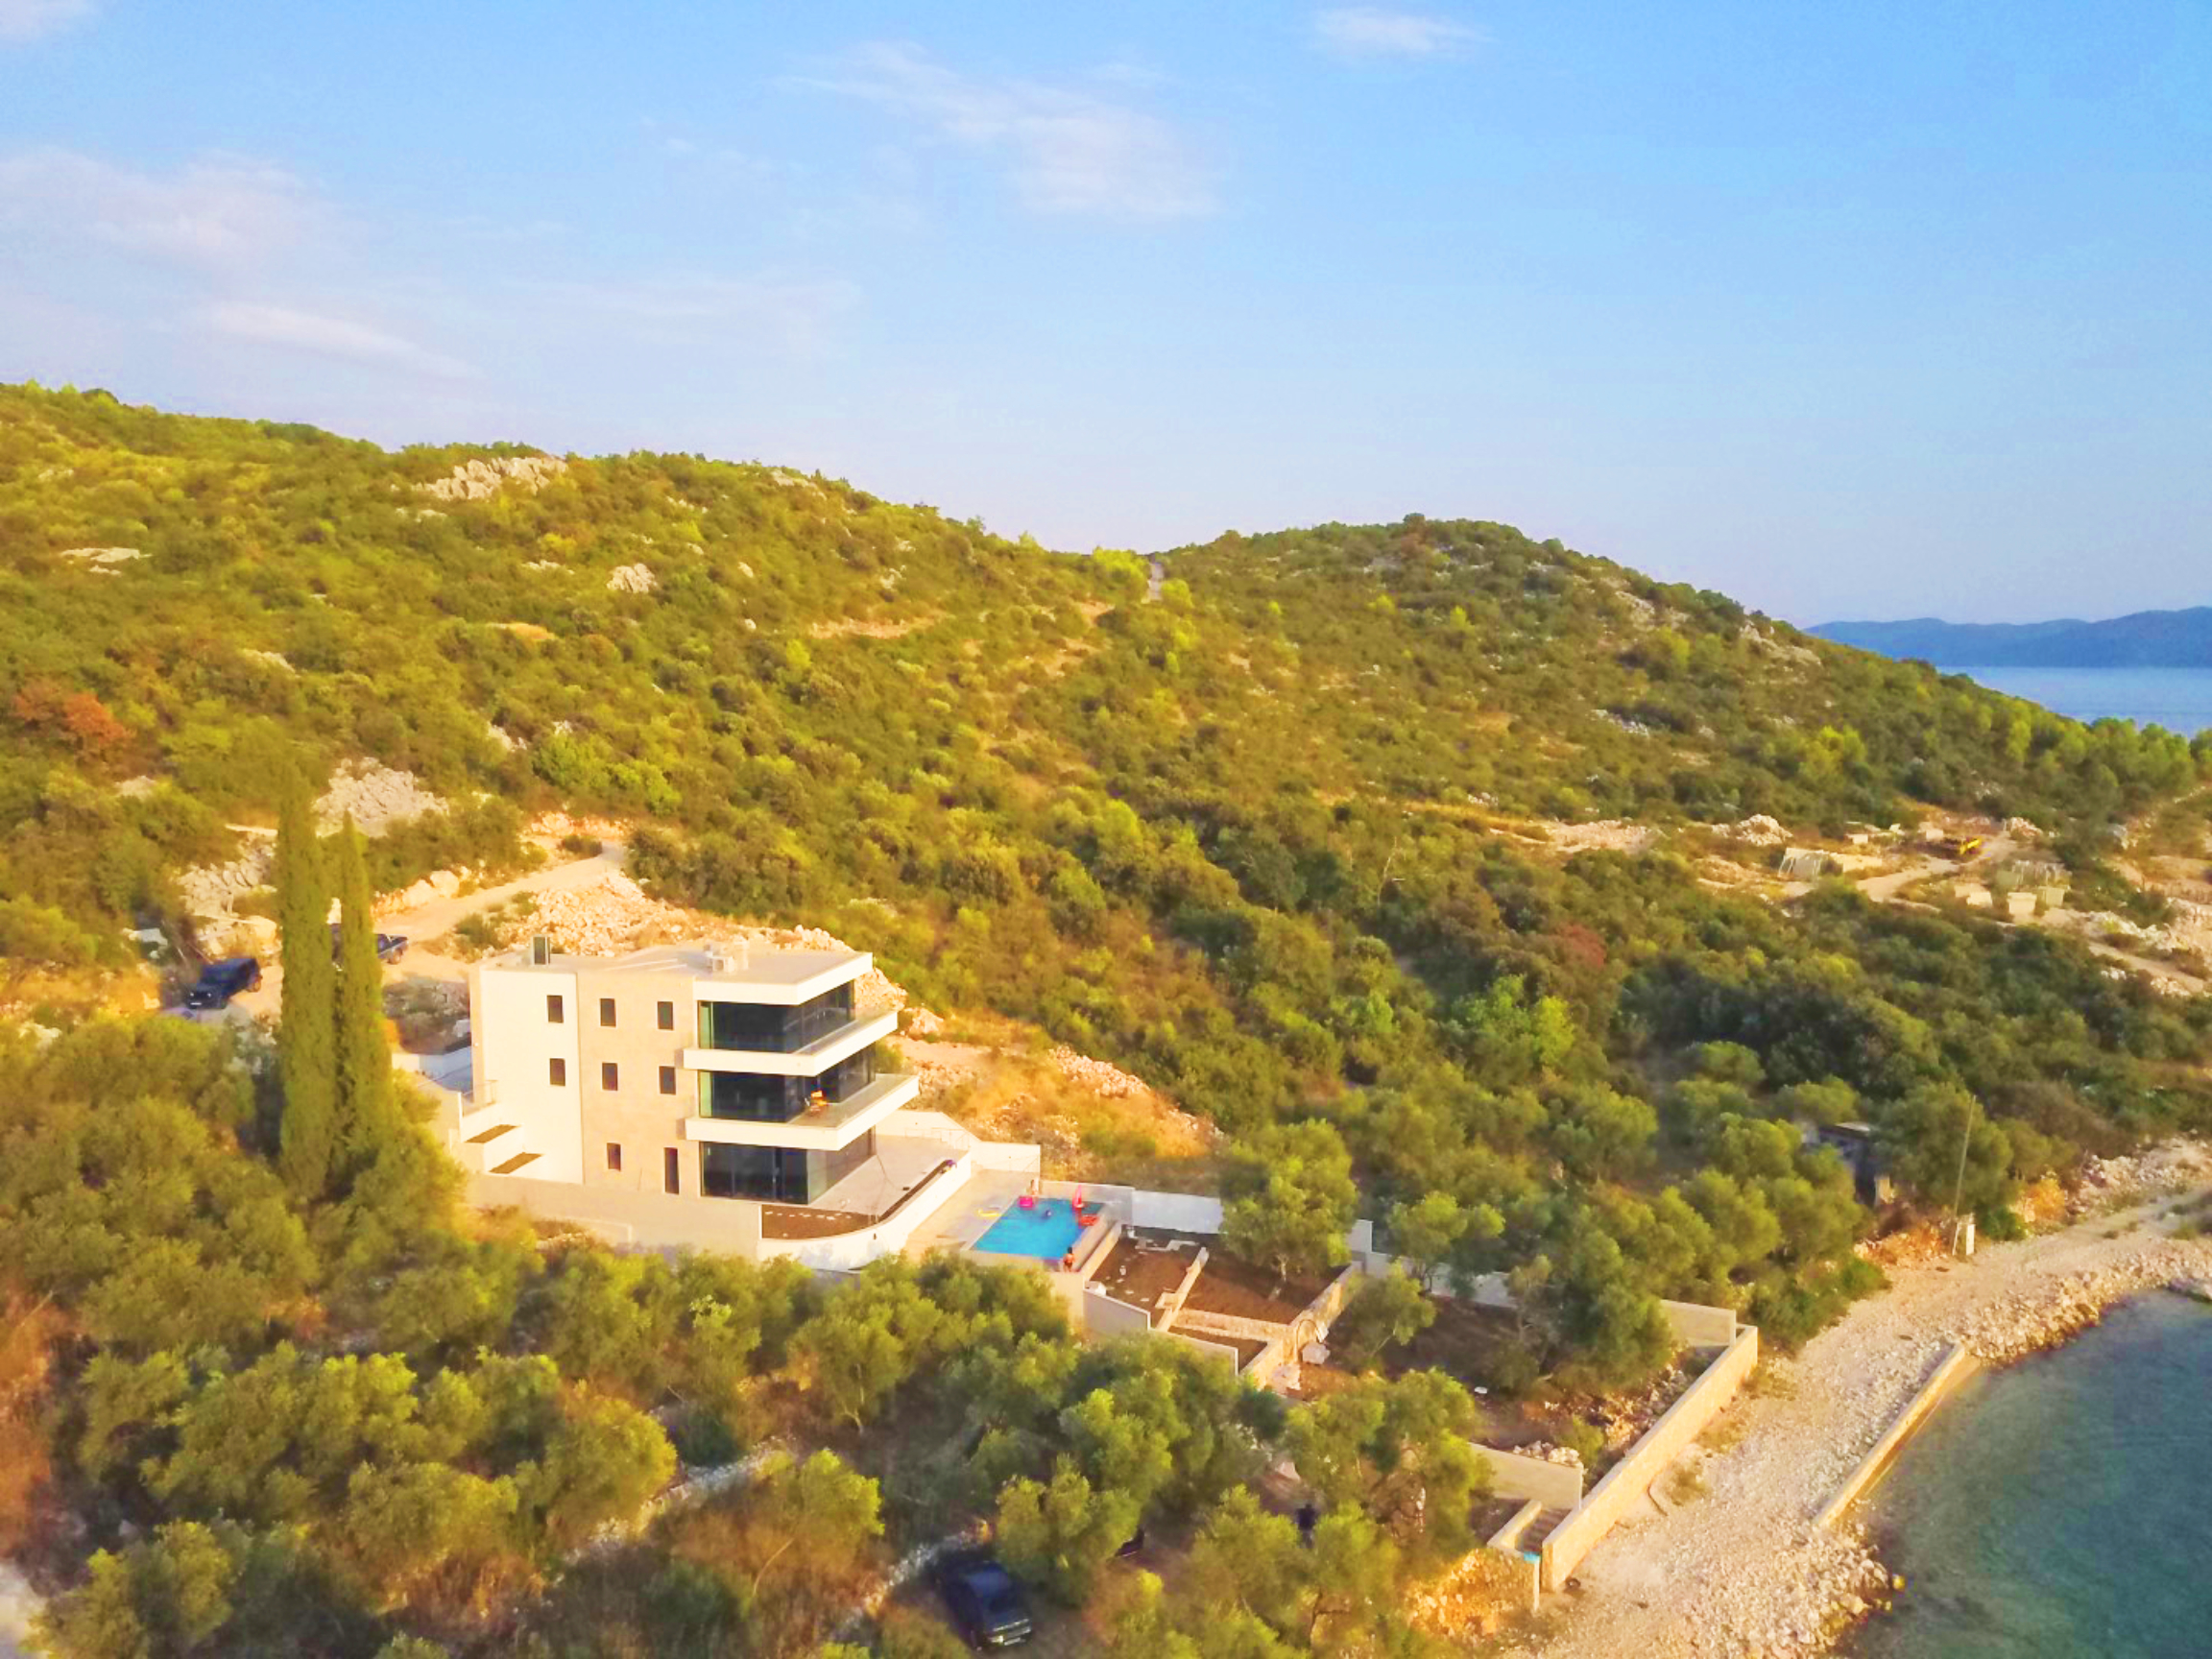 <p>Sleeps 12 (+2)<br />6 bedrooms<br />6.5 bathrooms<br />Kitchen and dining area <br />Terrace with a swimming pool<br />Private parking place<br />Distance to Old Town Dubrovnik: 35 minutes drive</p><p>Distance to beach: 1-2 minutes walking</p>